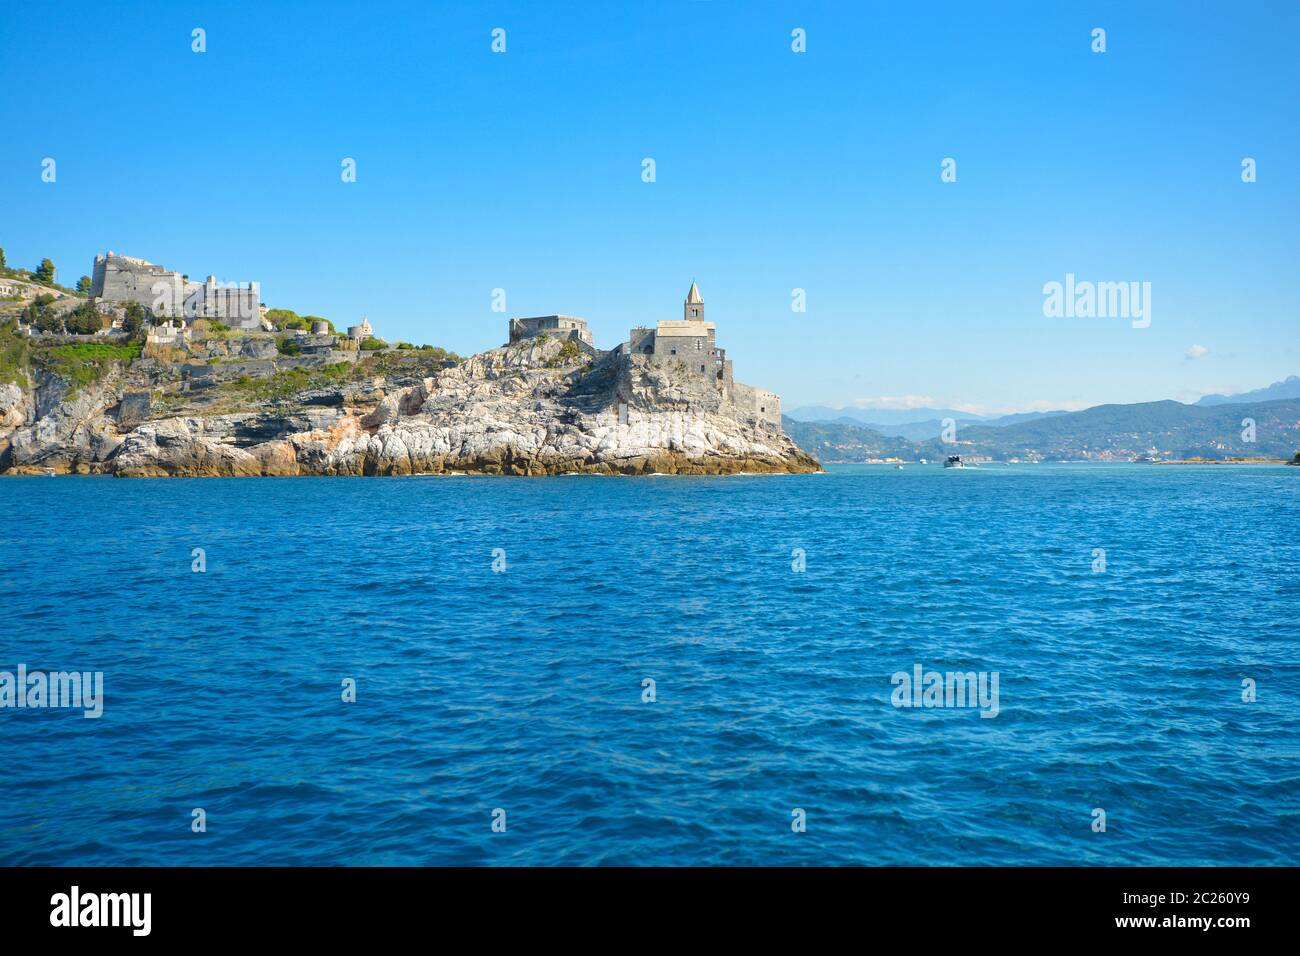 The gothic Church of St Peter and Doria Castle on the rocky peninsula at the entrance to the gulf of Poets at Porto Venere Italy on the Ligurian Coast Stock Photo